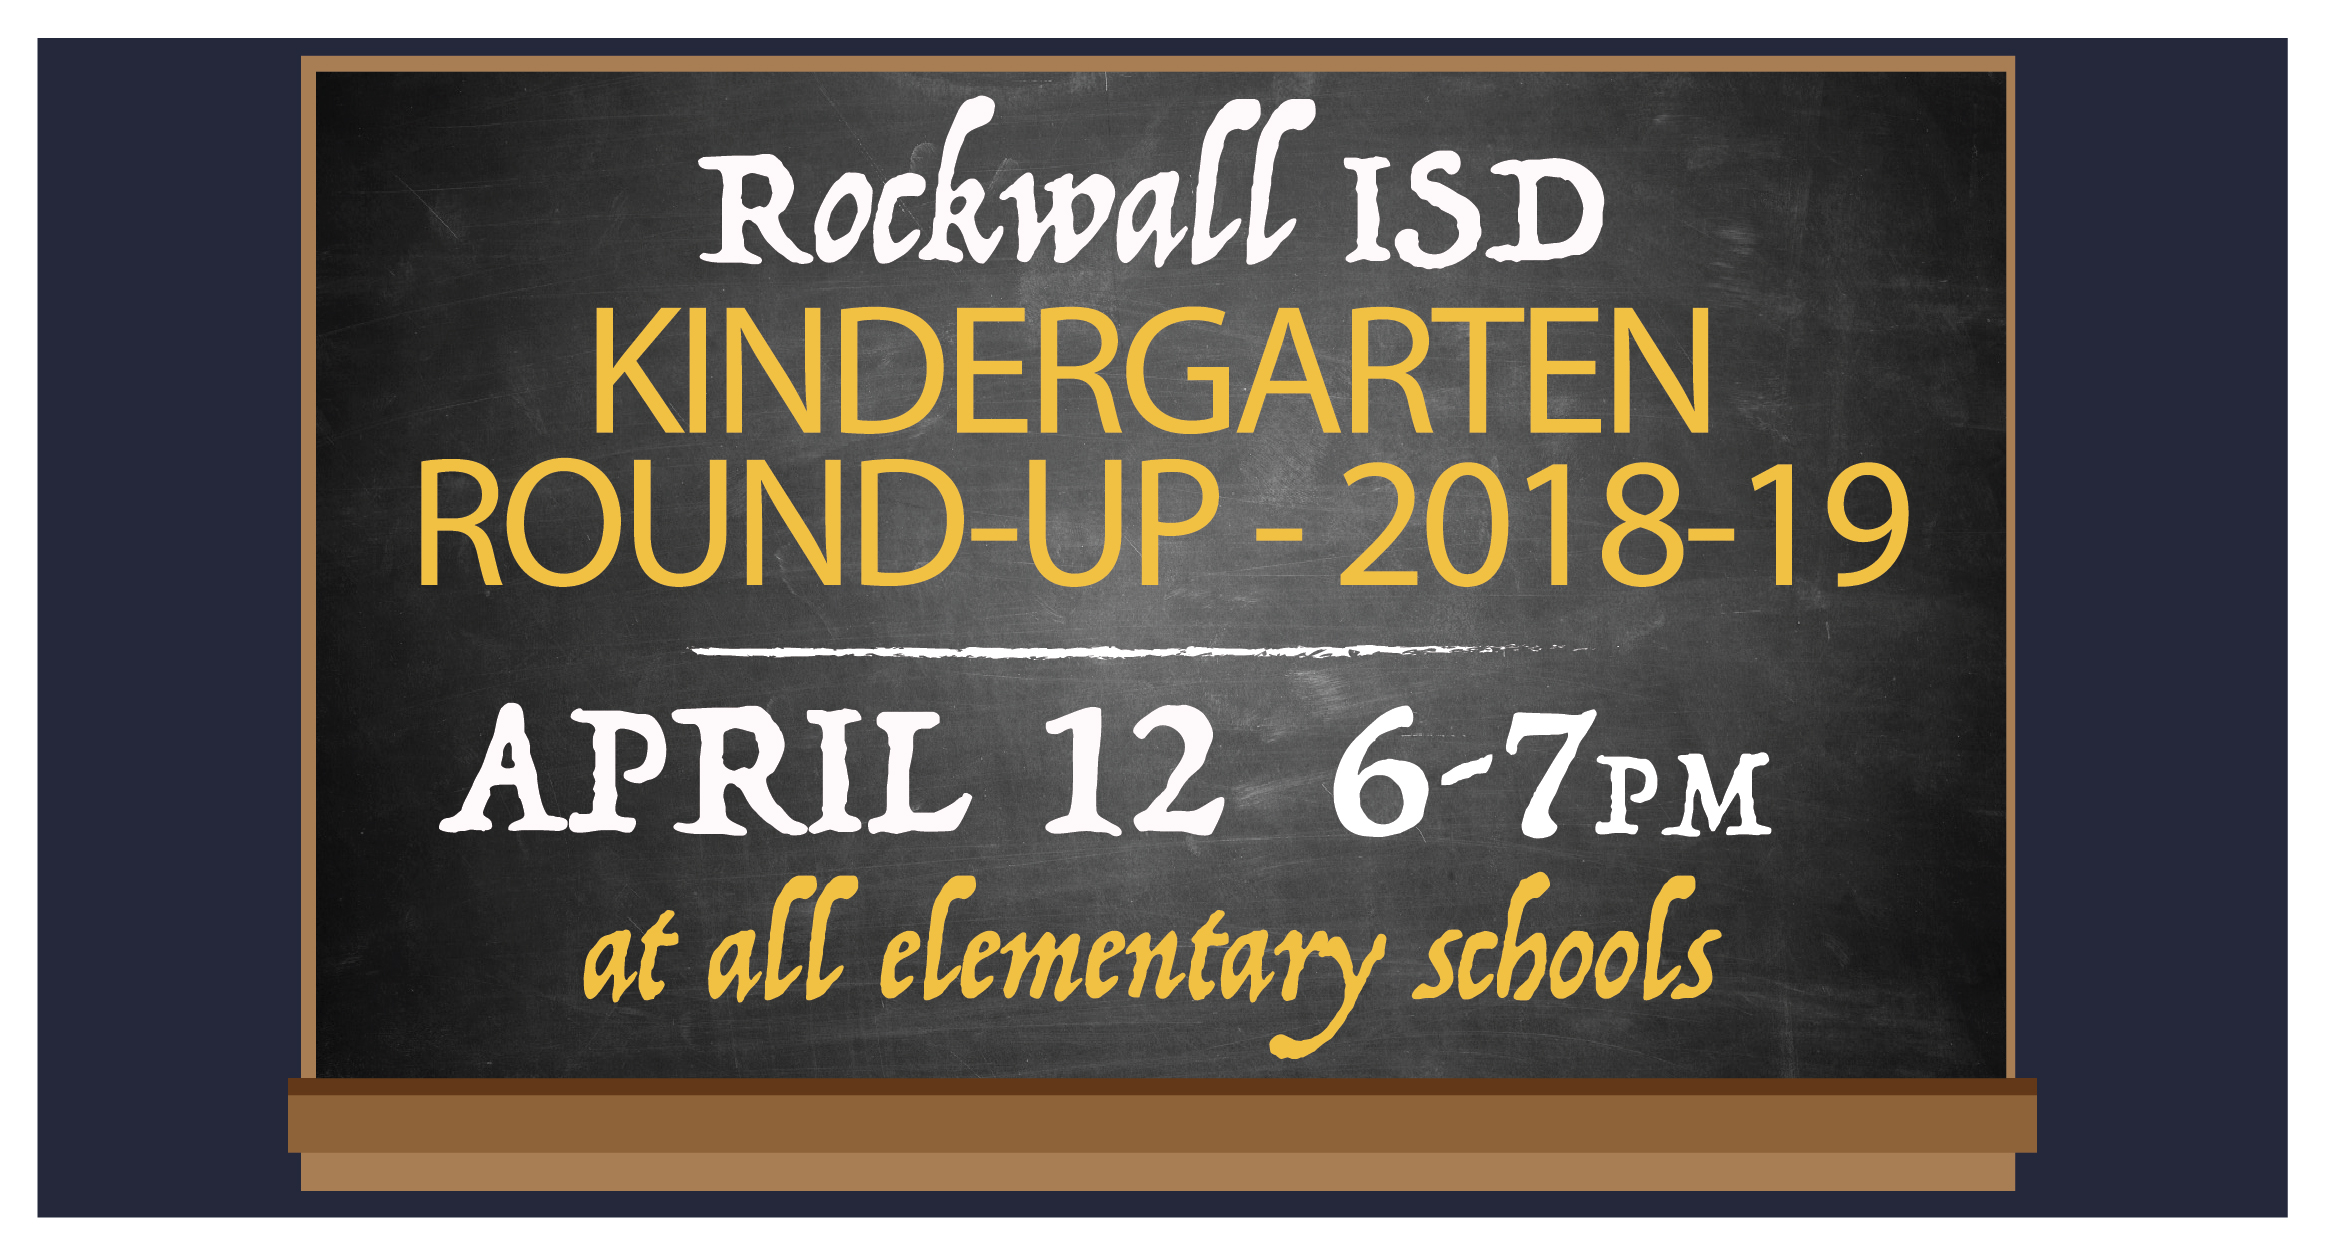 Rockwall ISD Kindergarten Round-Up April 12 at all elementary schools